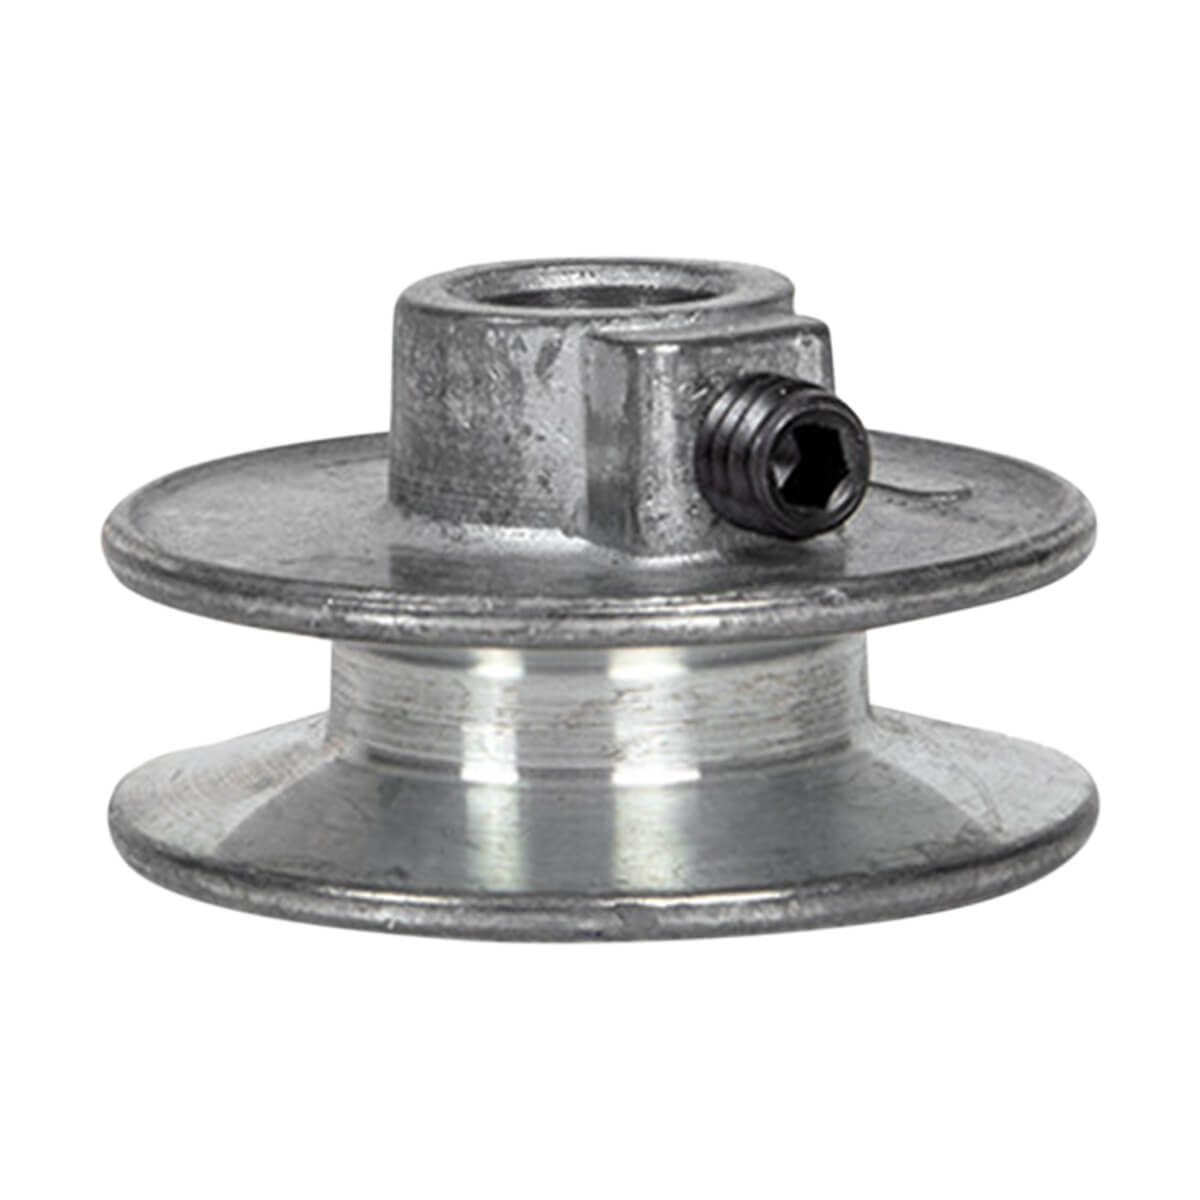 "Aluminum Pulley for A-Belts - 2 1/4"" x 5/8"""